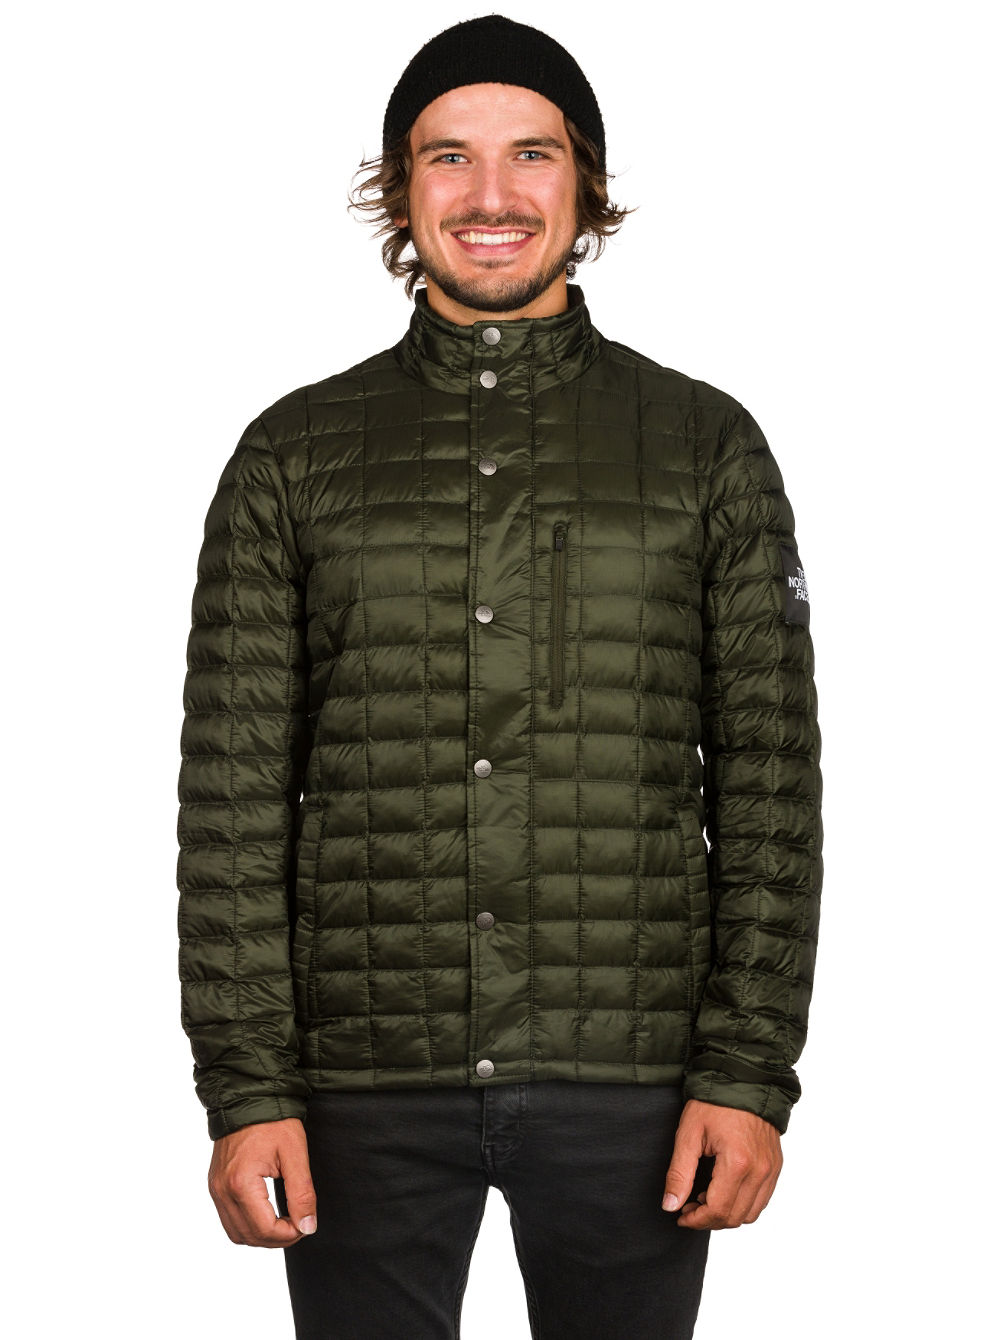 the-north-face-denali-thermoball-jacket